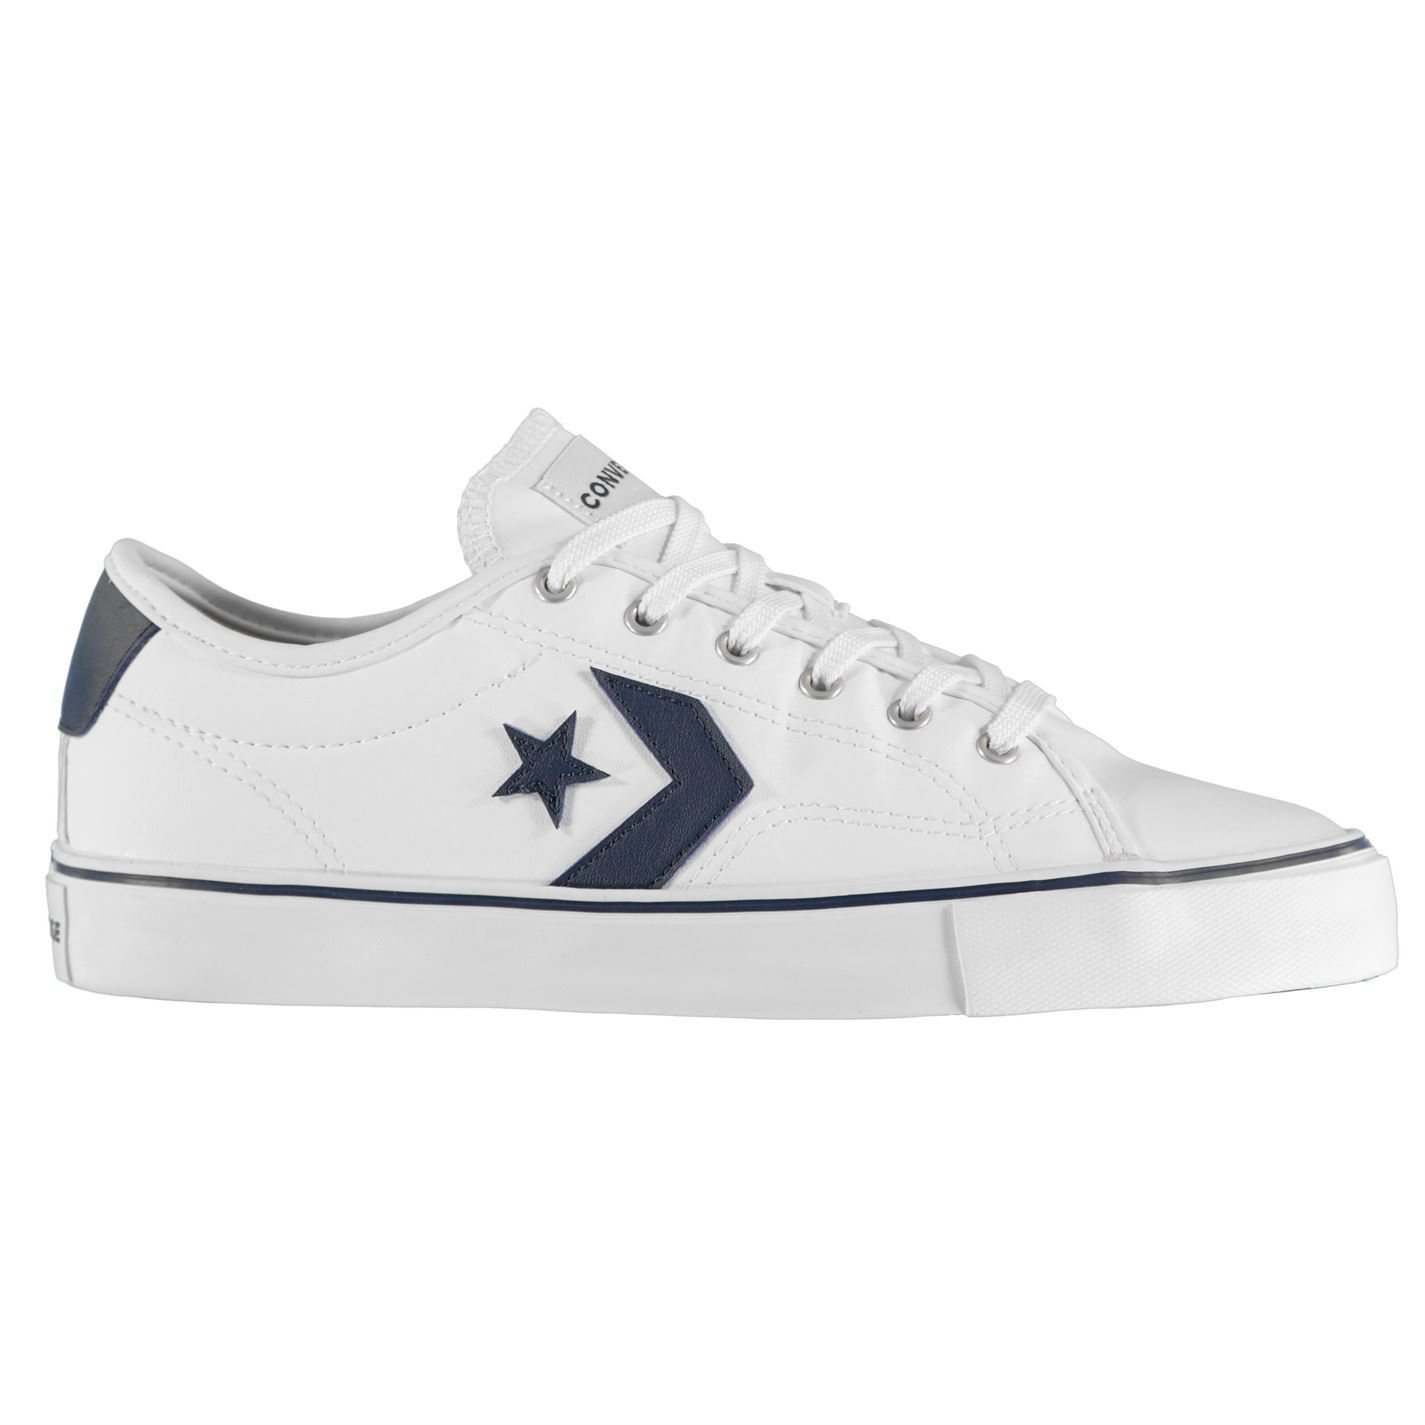 Converse-Ox-Replay-Low-Baskets-Pour-Homme-Chaussures-De-Loisirs-Chaussures-Baskets miniature 14